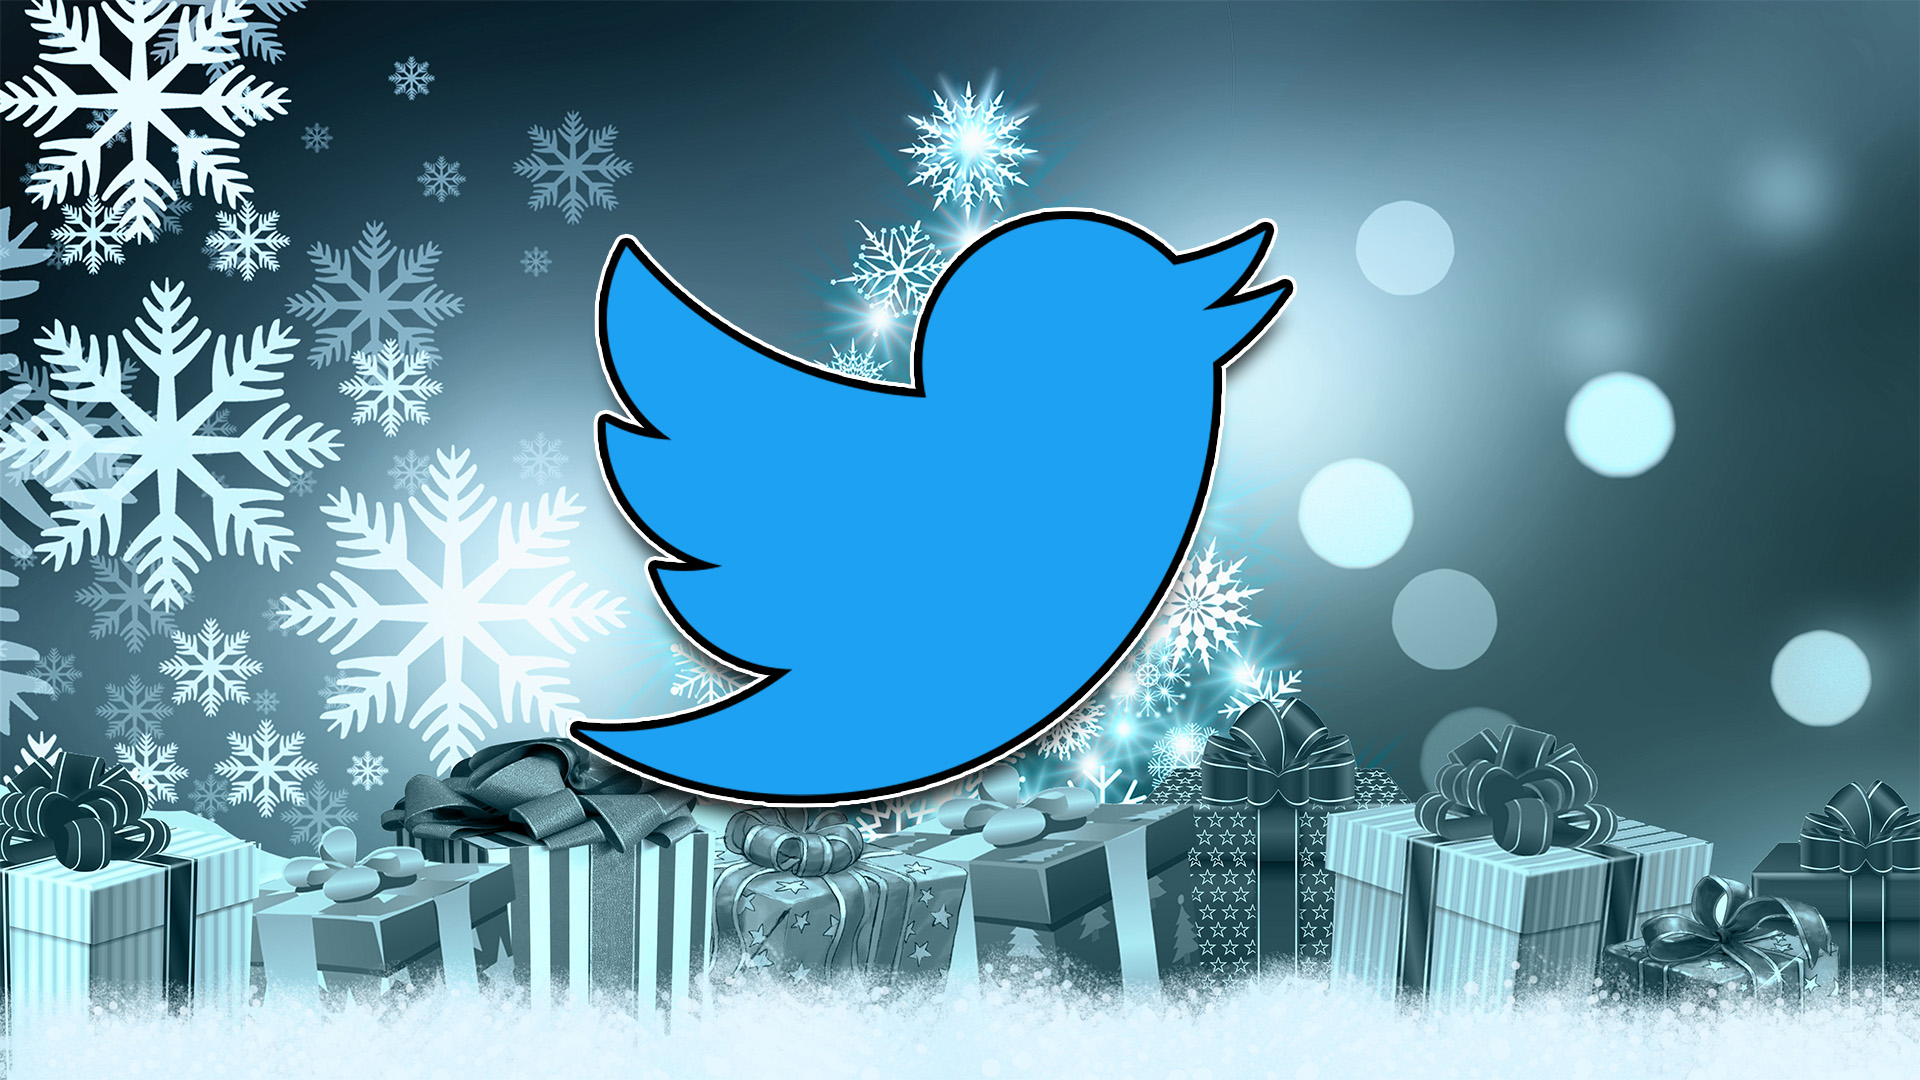 Nigel's Christmas Twitter Party 2019 Terms and Conditions